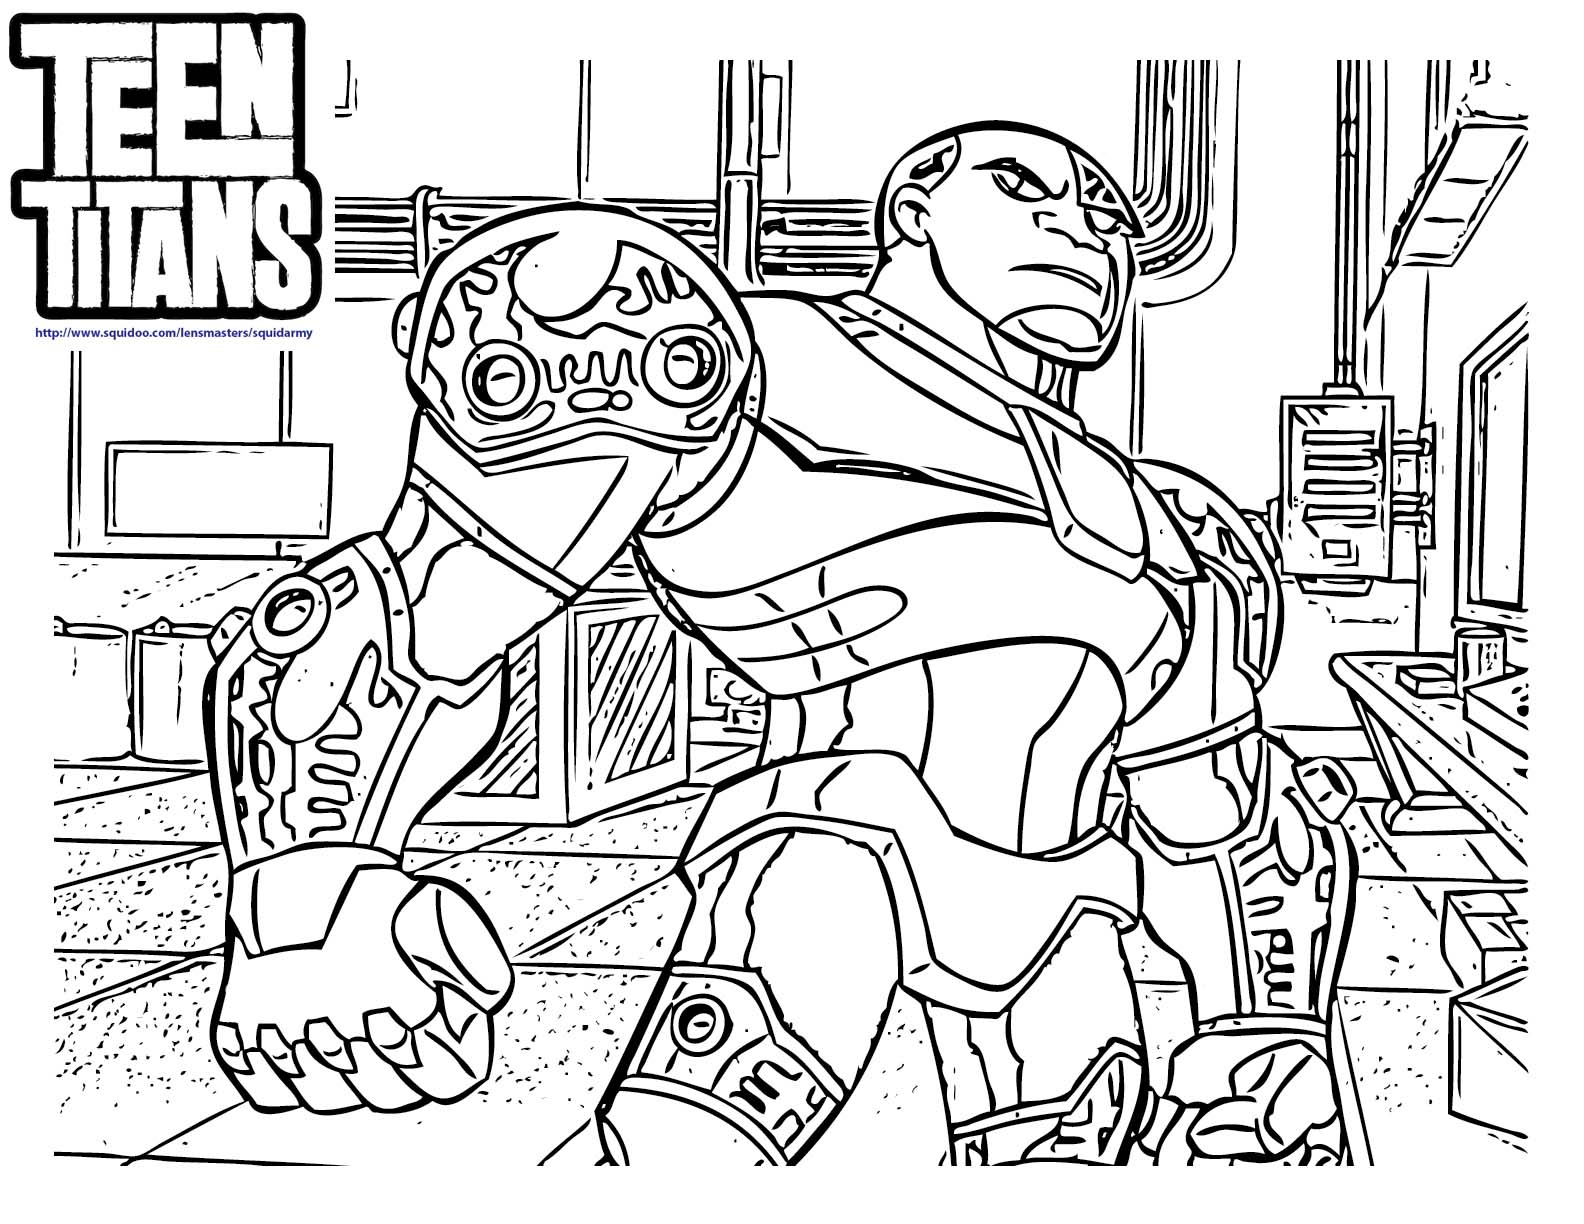 teen titans go color pages teen titans go coloring pages for kids mister coloring color go pages teen titans